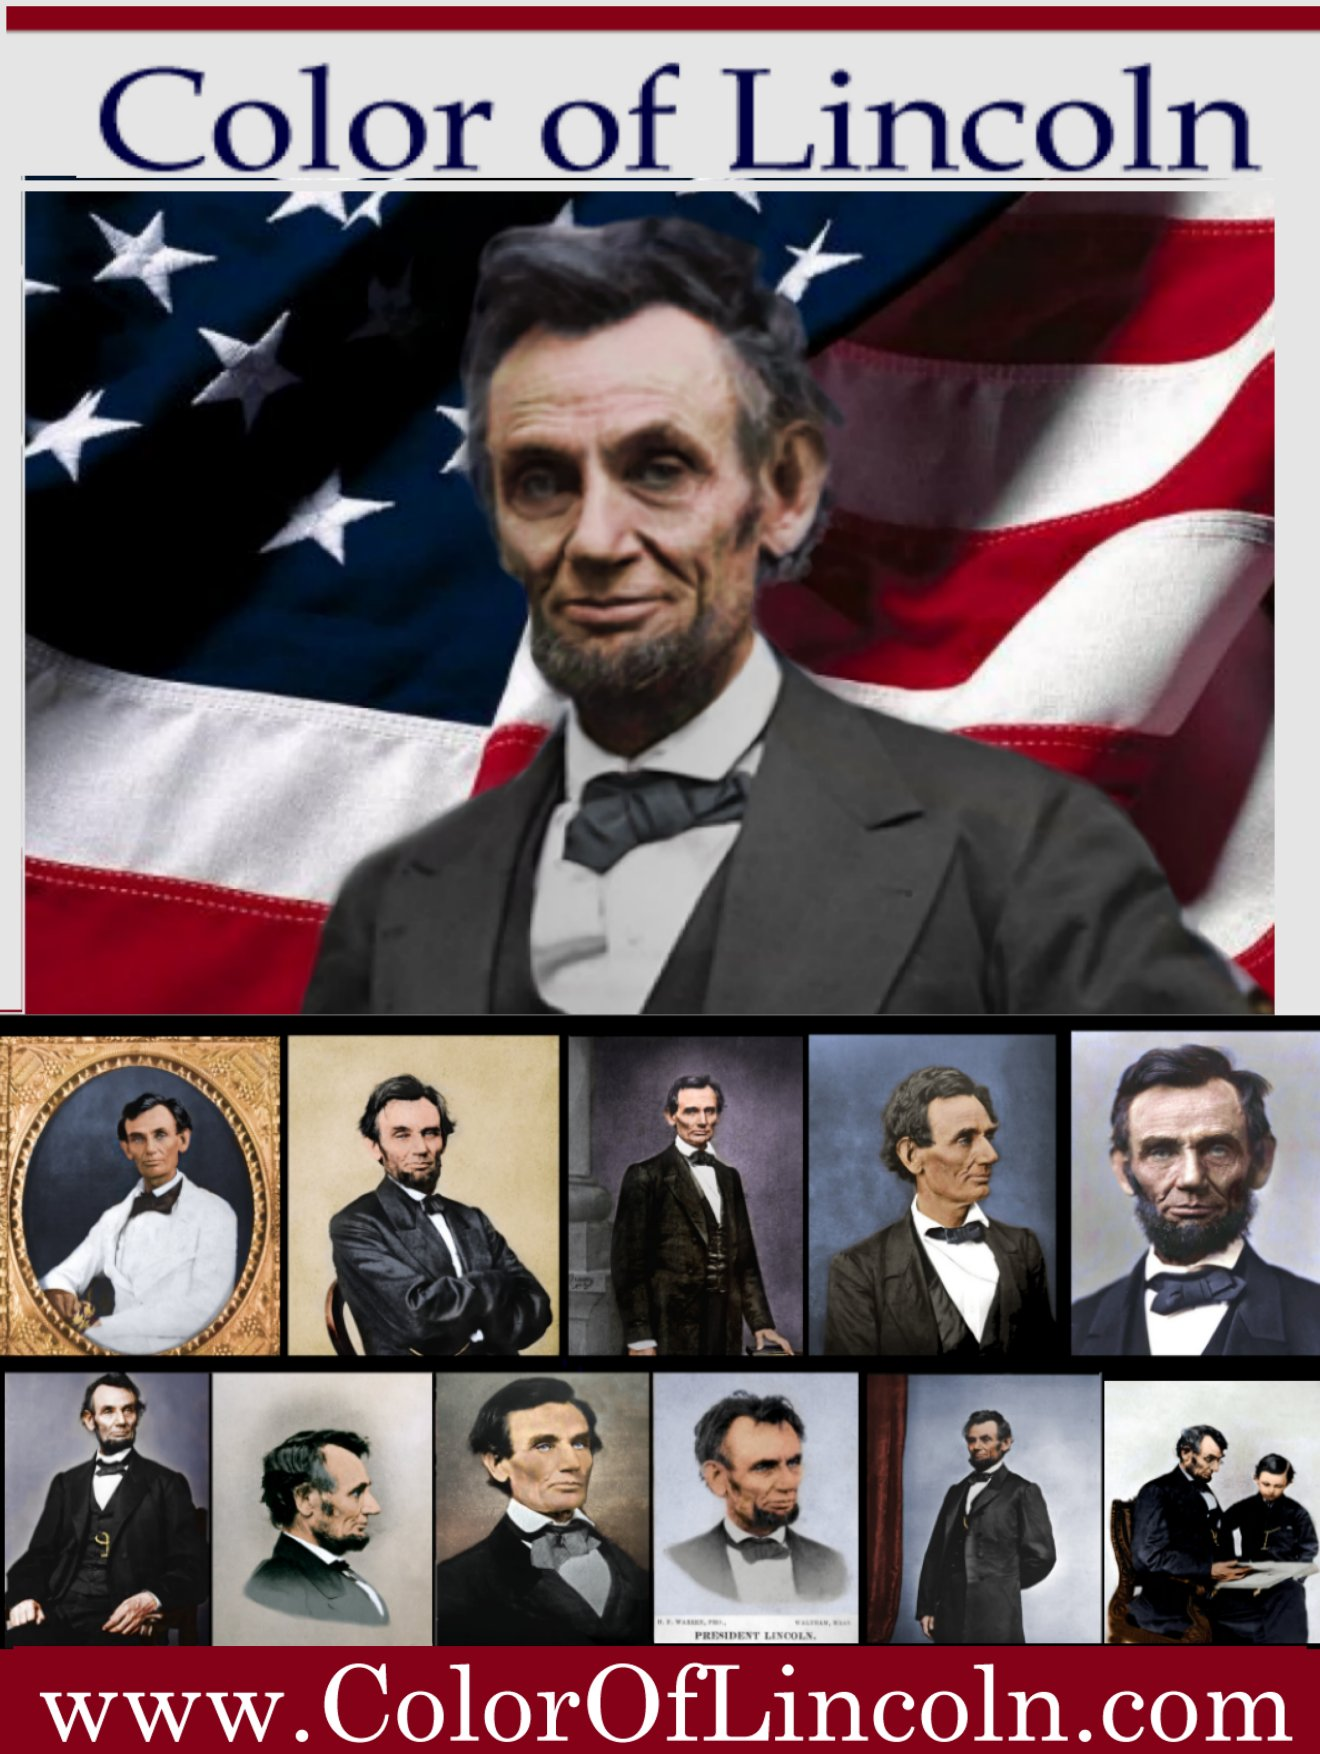 abraham lincolns contribution to america society Abraham lincoln and the global economy the need to strengthen the fabric of the american society and economy in light abraham lincoln inherited a country.